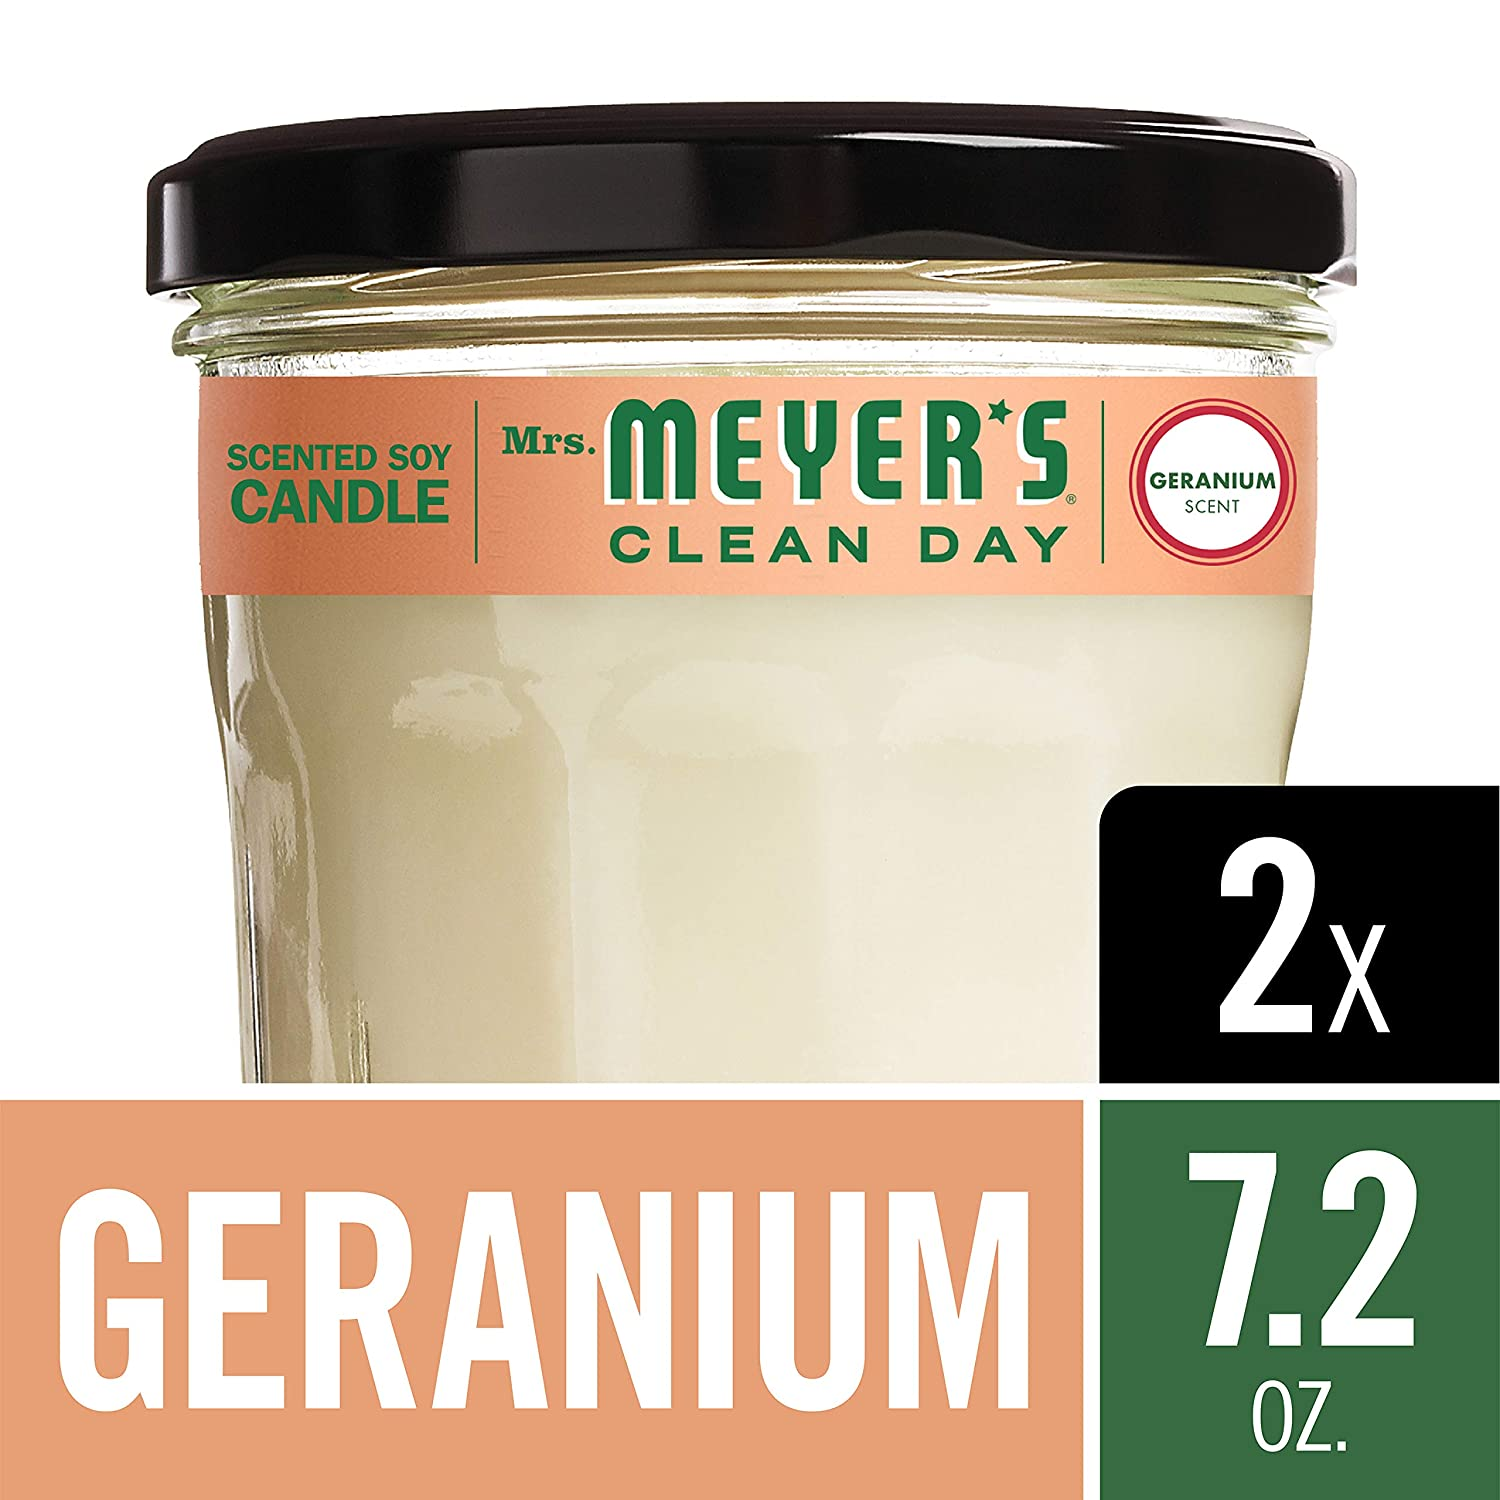 Mrs. Meyer's Clean Day Scented Soy Candle, Large Glass, Geranium, 7.2 oz (2 pack) Mrs. Meyer's Merged H&PC-72433